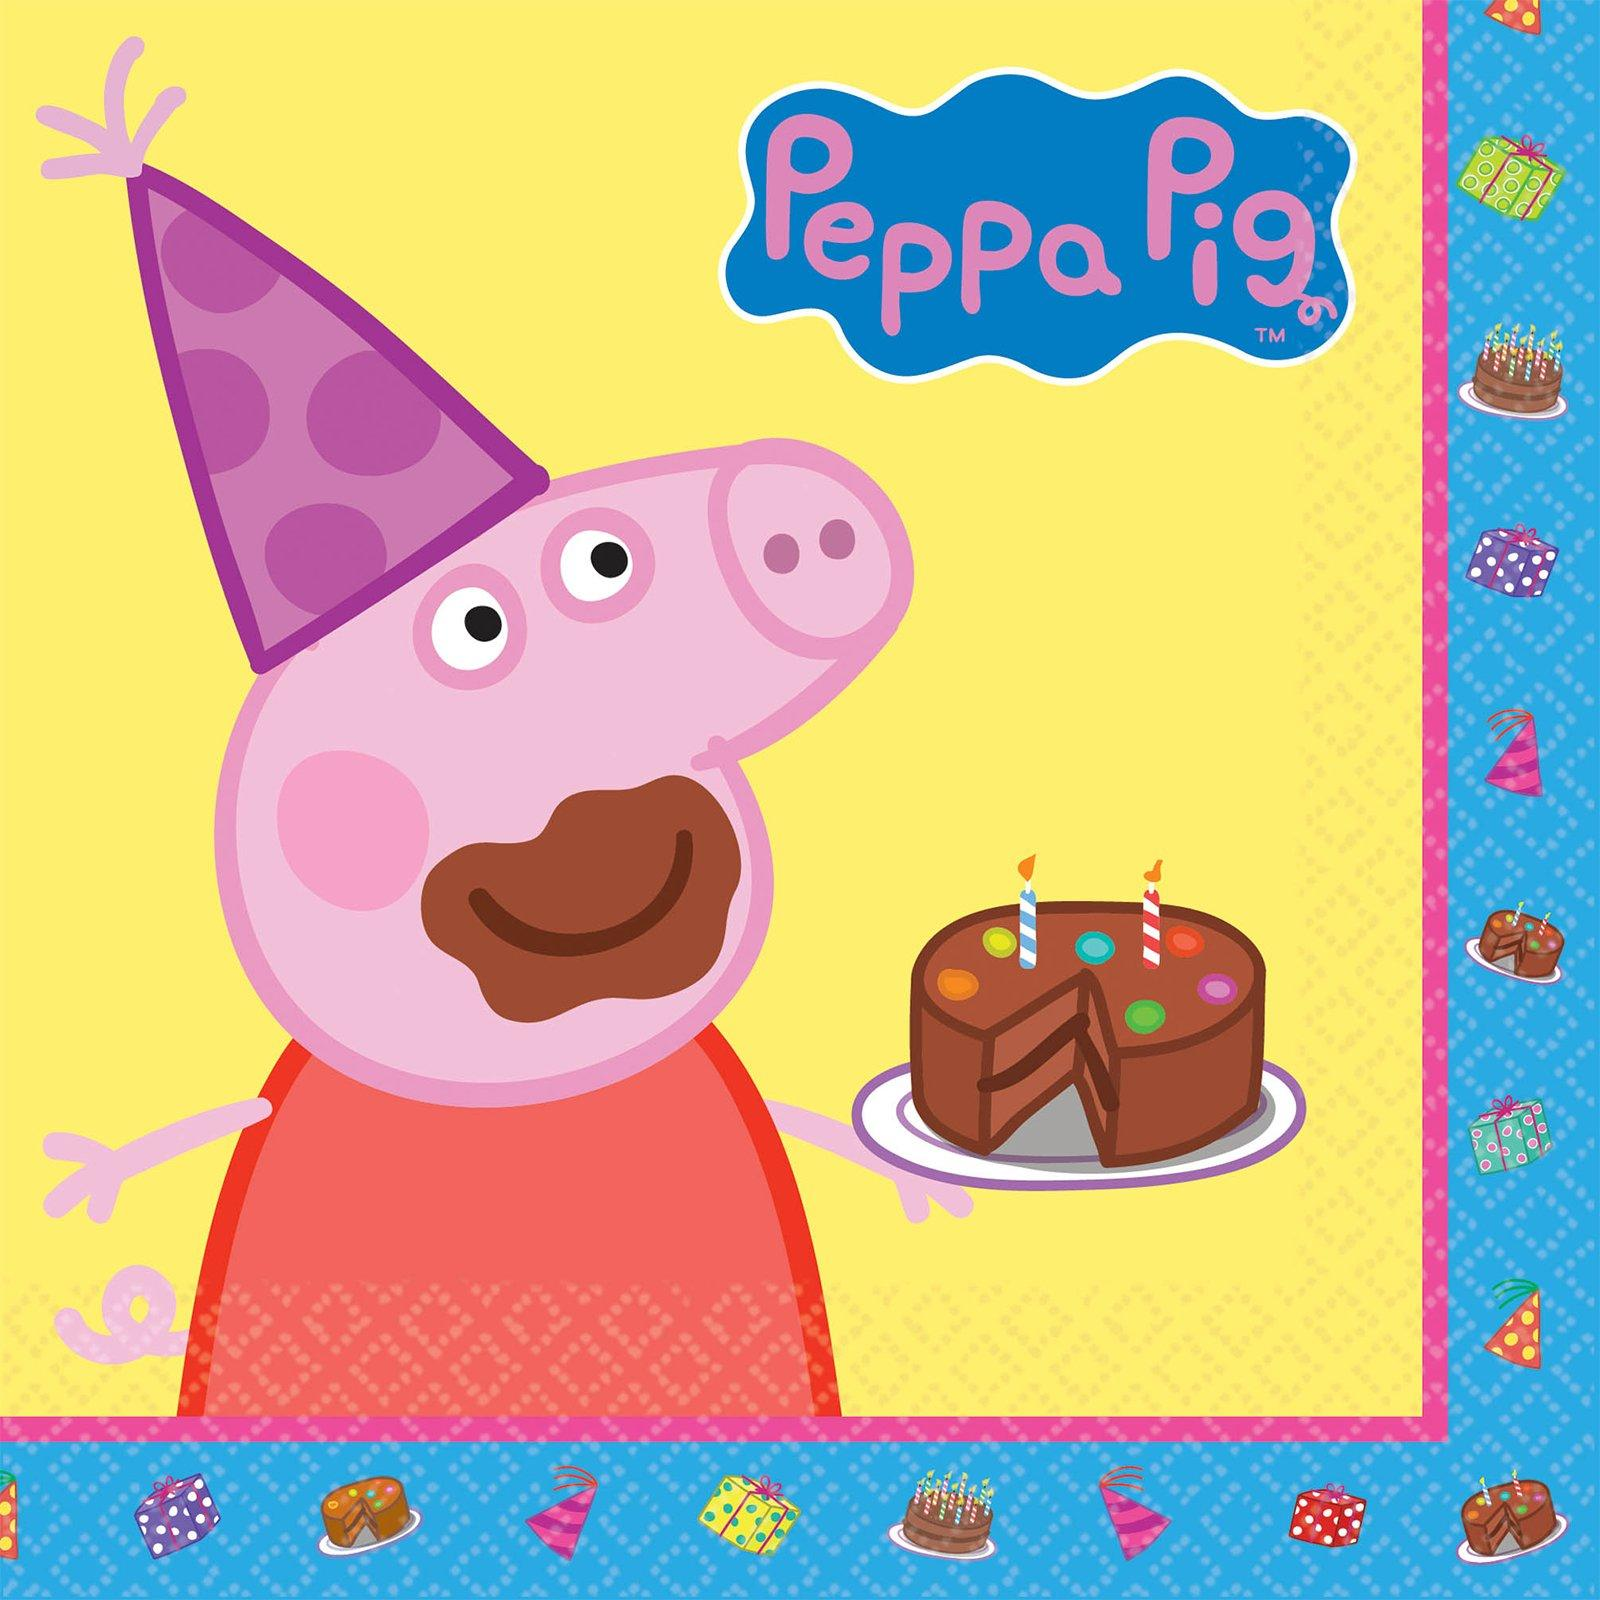 Peppa Pig Birthday Party Supplies Party Supplies Canada - Open A Party